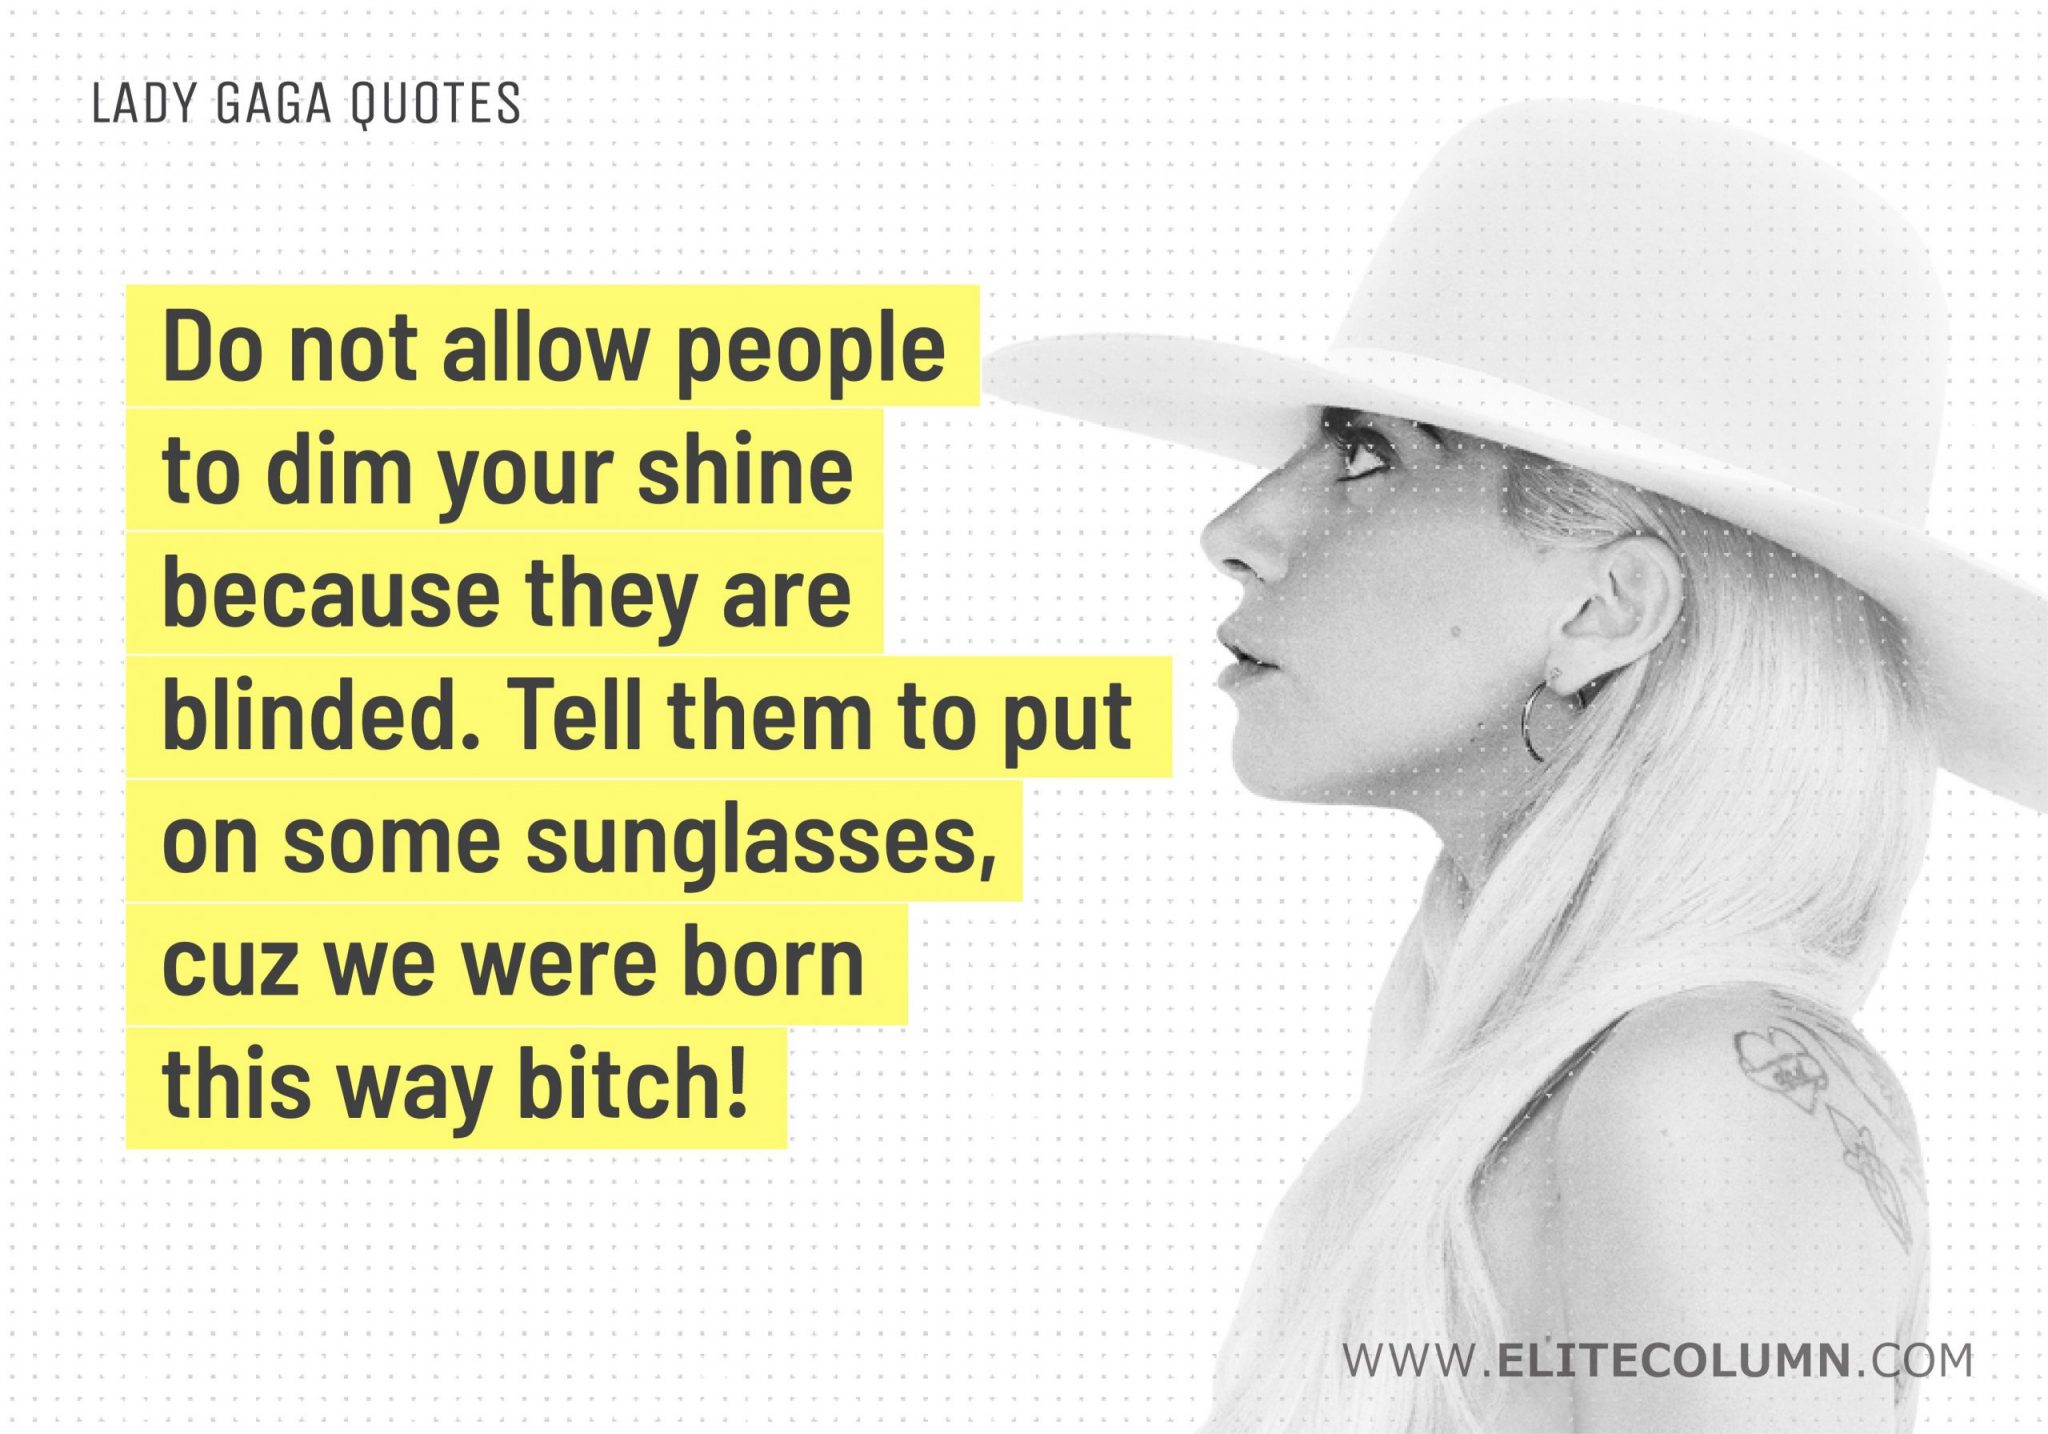 Lady Gaga Quotes (9)